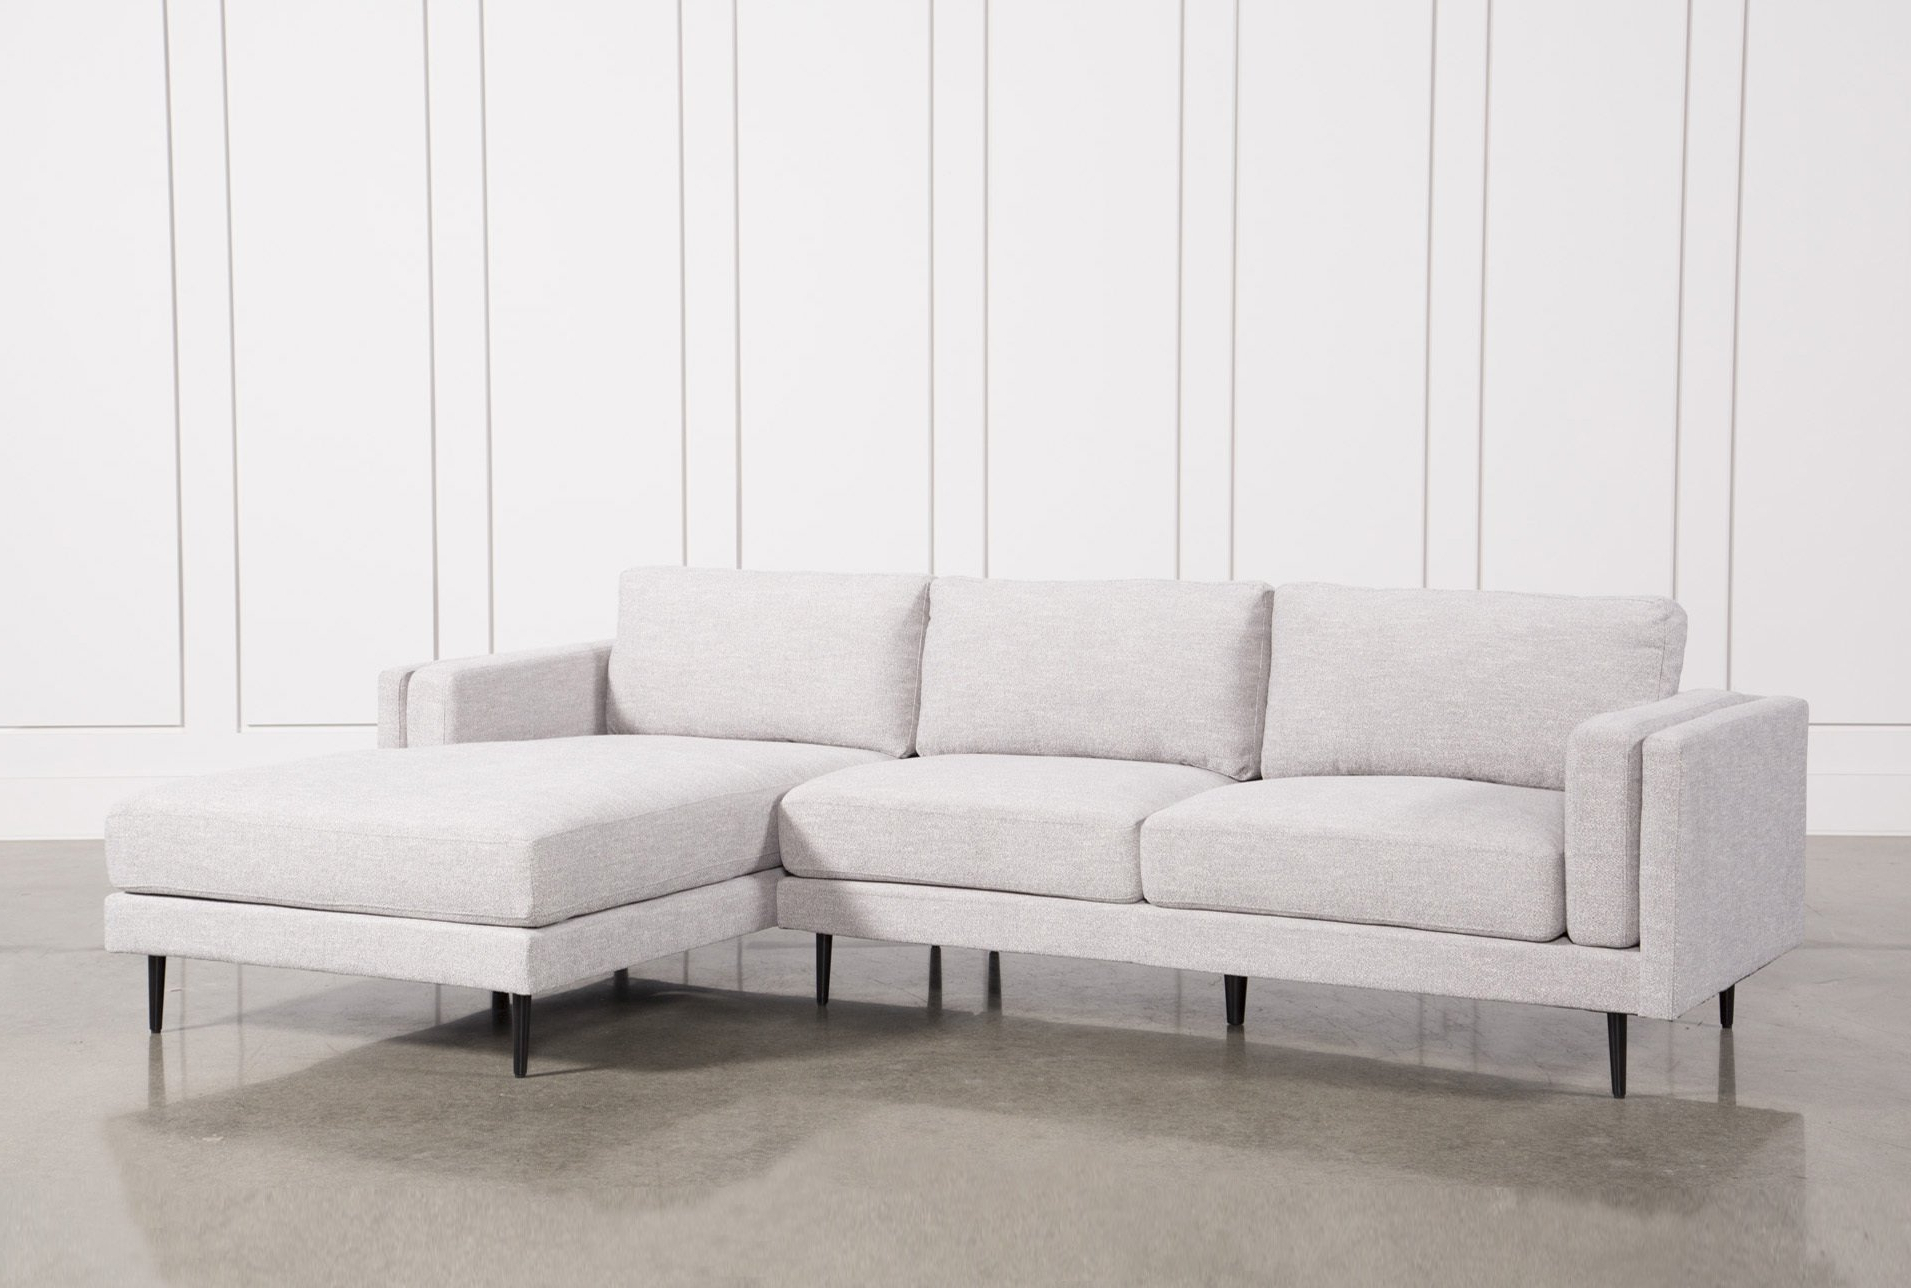 Flossy Pull Out Bed Chaise Aquarius Light Grey Piece Sectional Throughout Trendy Egan Ii Cement Sofa Sectionals With Reversible Chaise (Gallery 13 of 20)